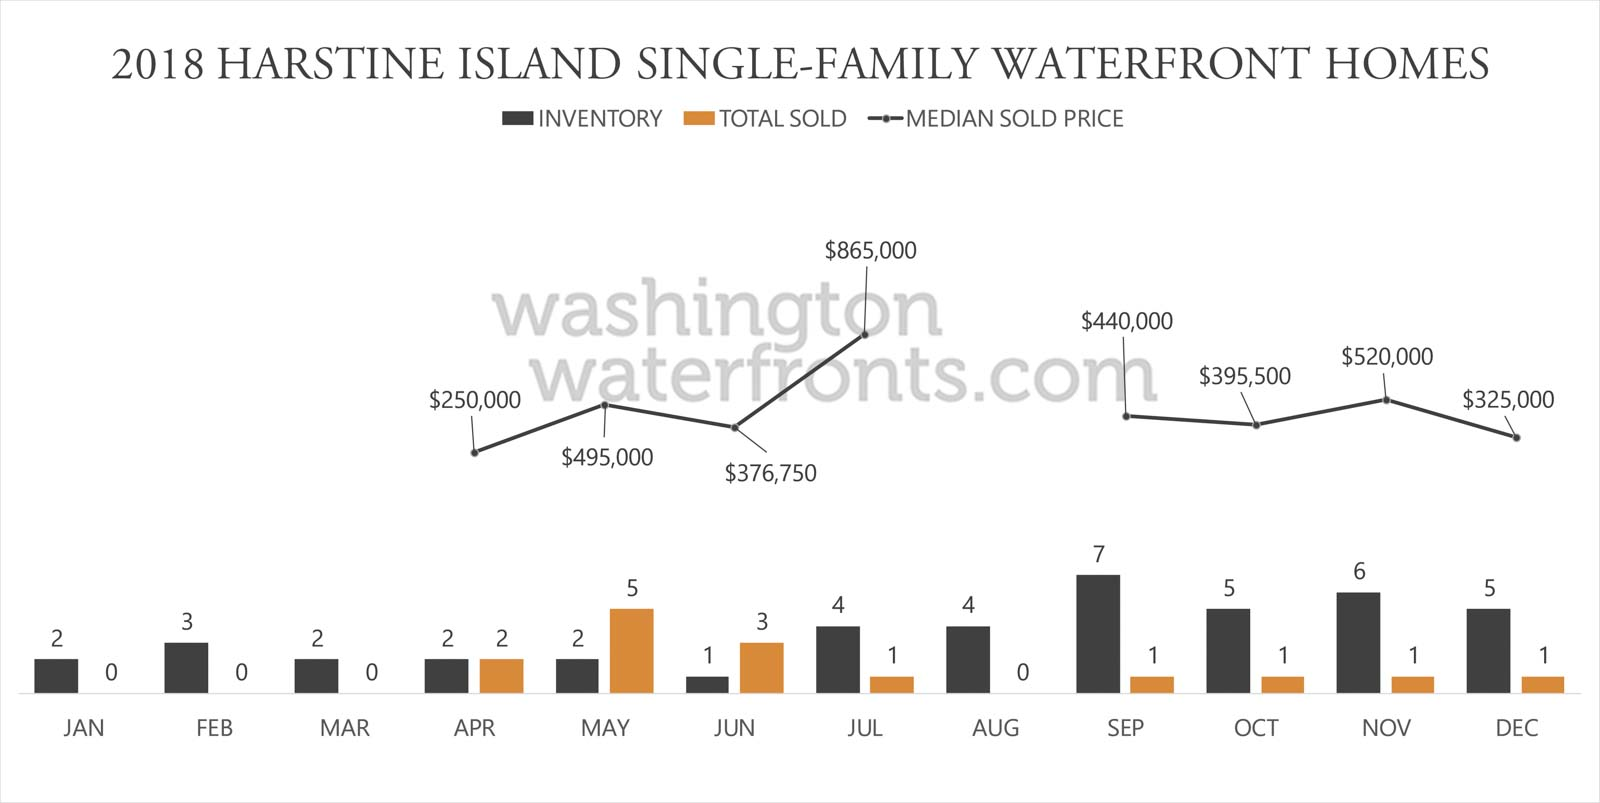 Harstine Island Waterfront Inventory